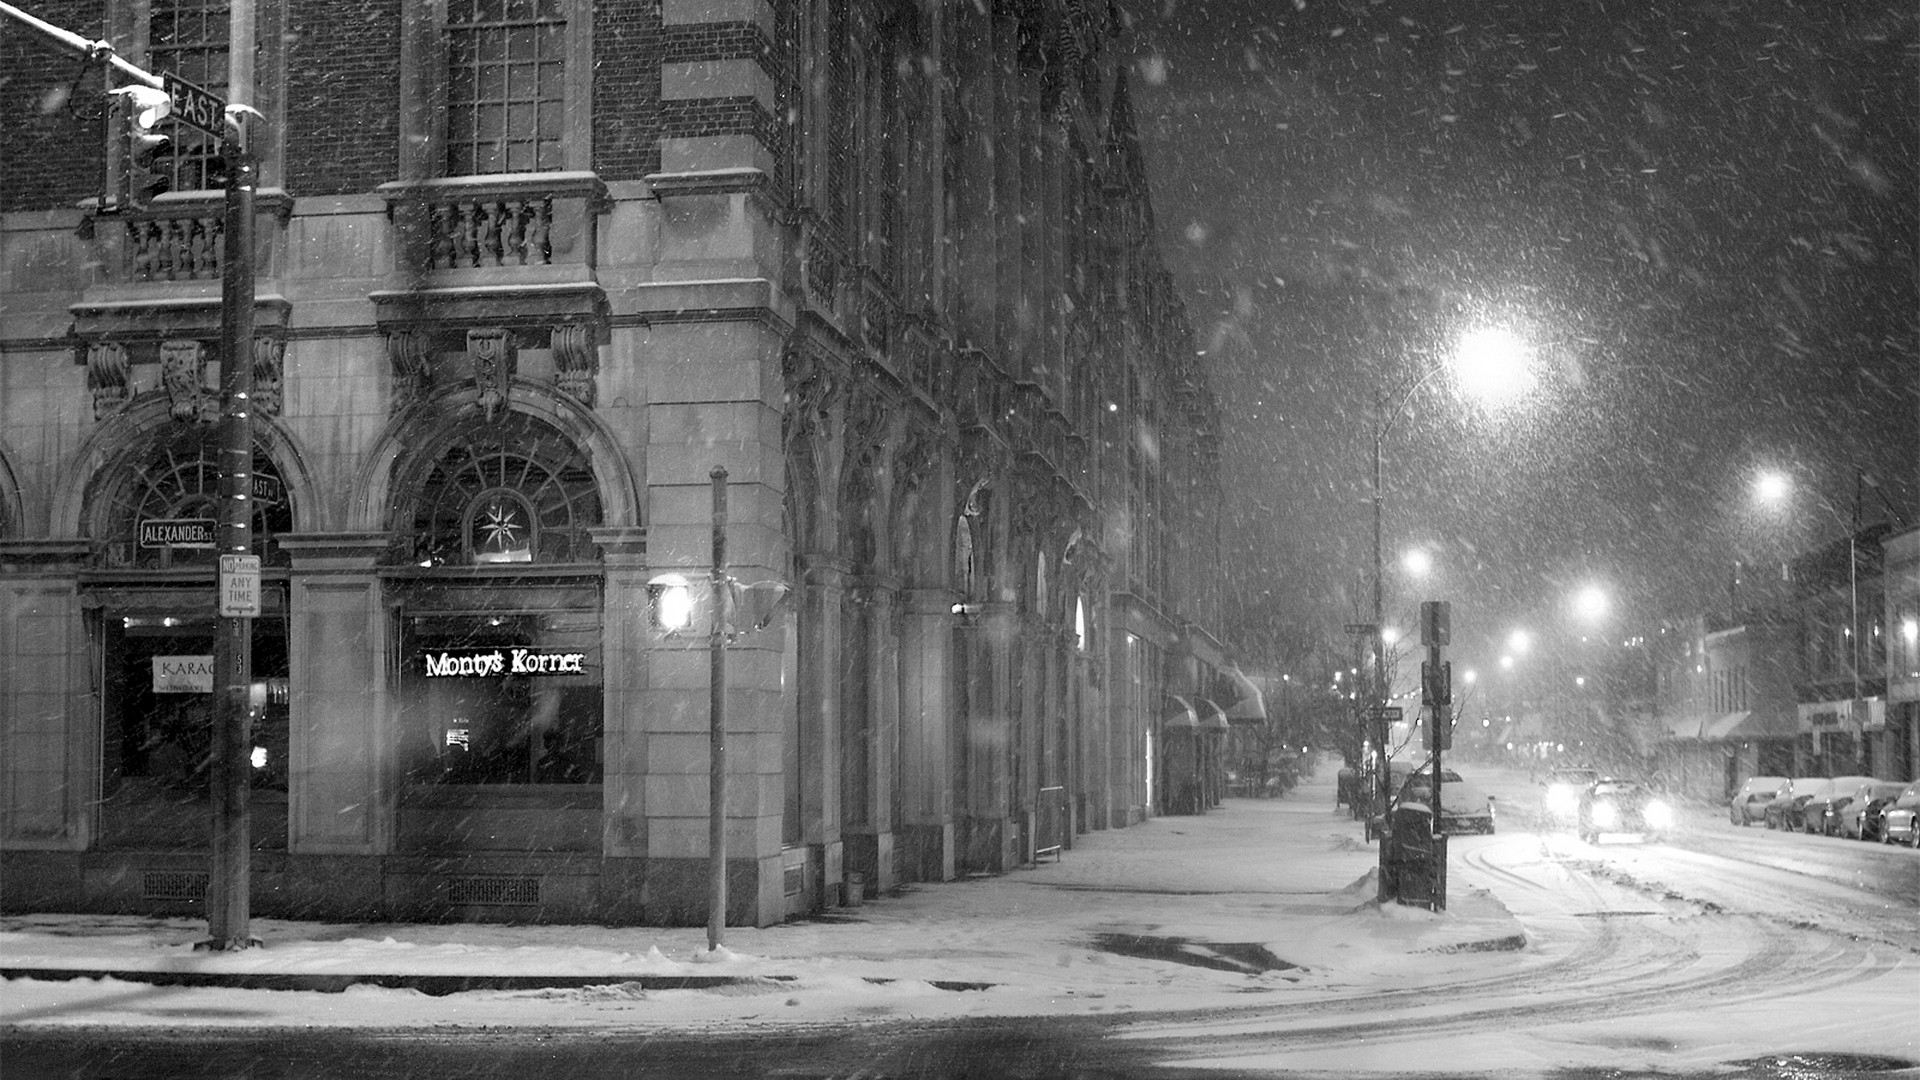 Download Wallpaper 1920x1080 City Street Snow Winter Lane Black